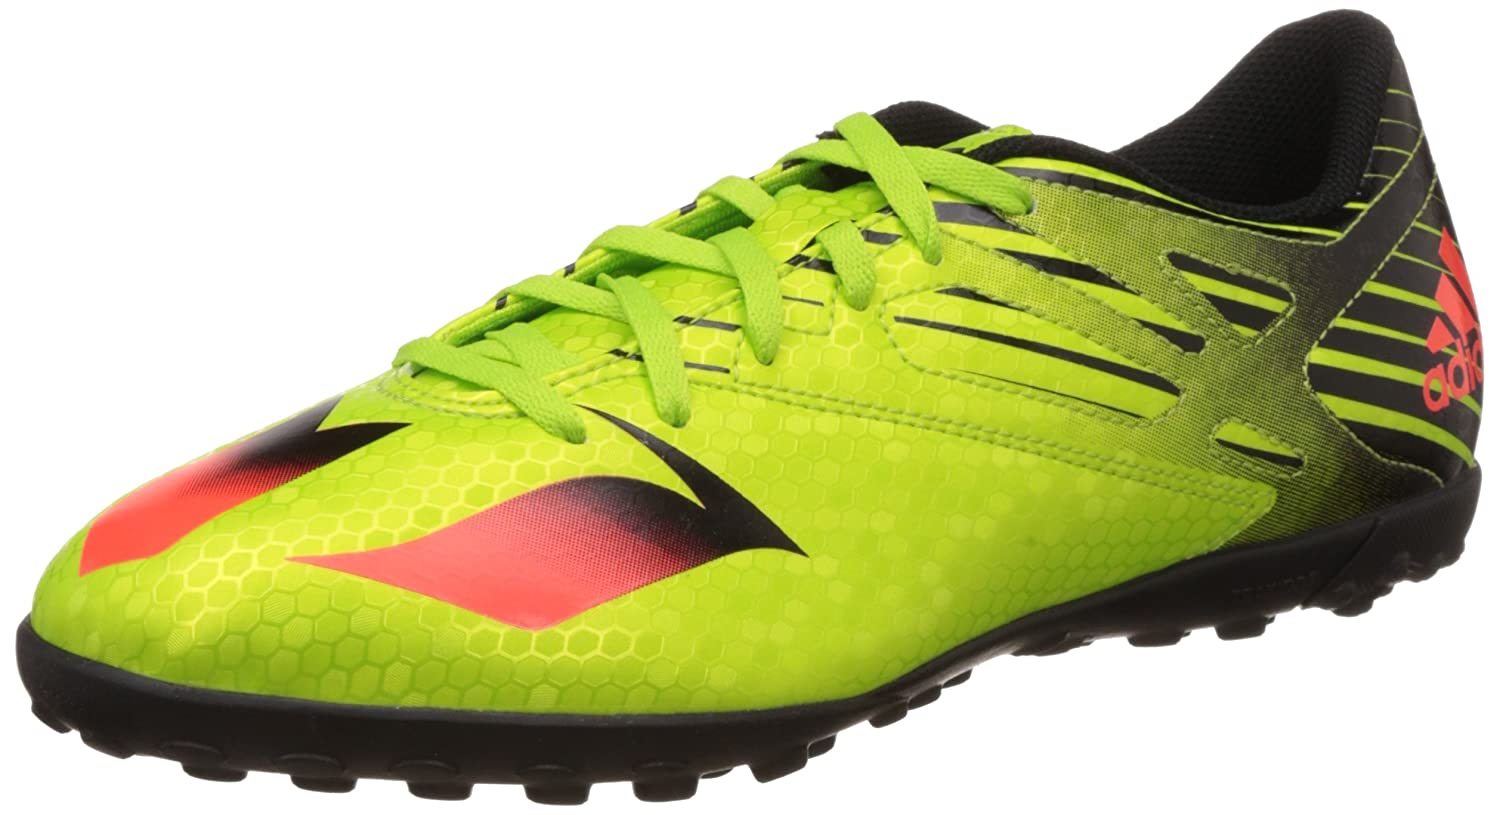 88c5ef766d3d Amazon.com: adidas Messi 15.4 TF Astro Turf Trainers - Green/Red: Shoes